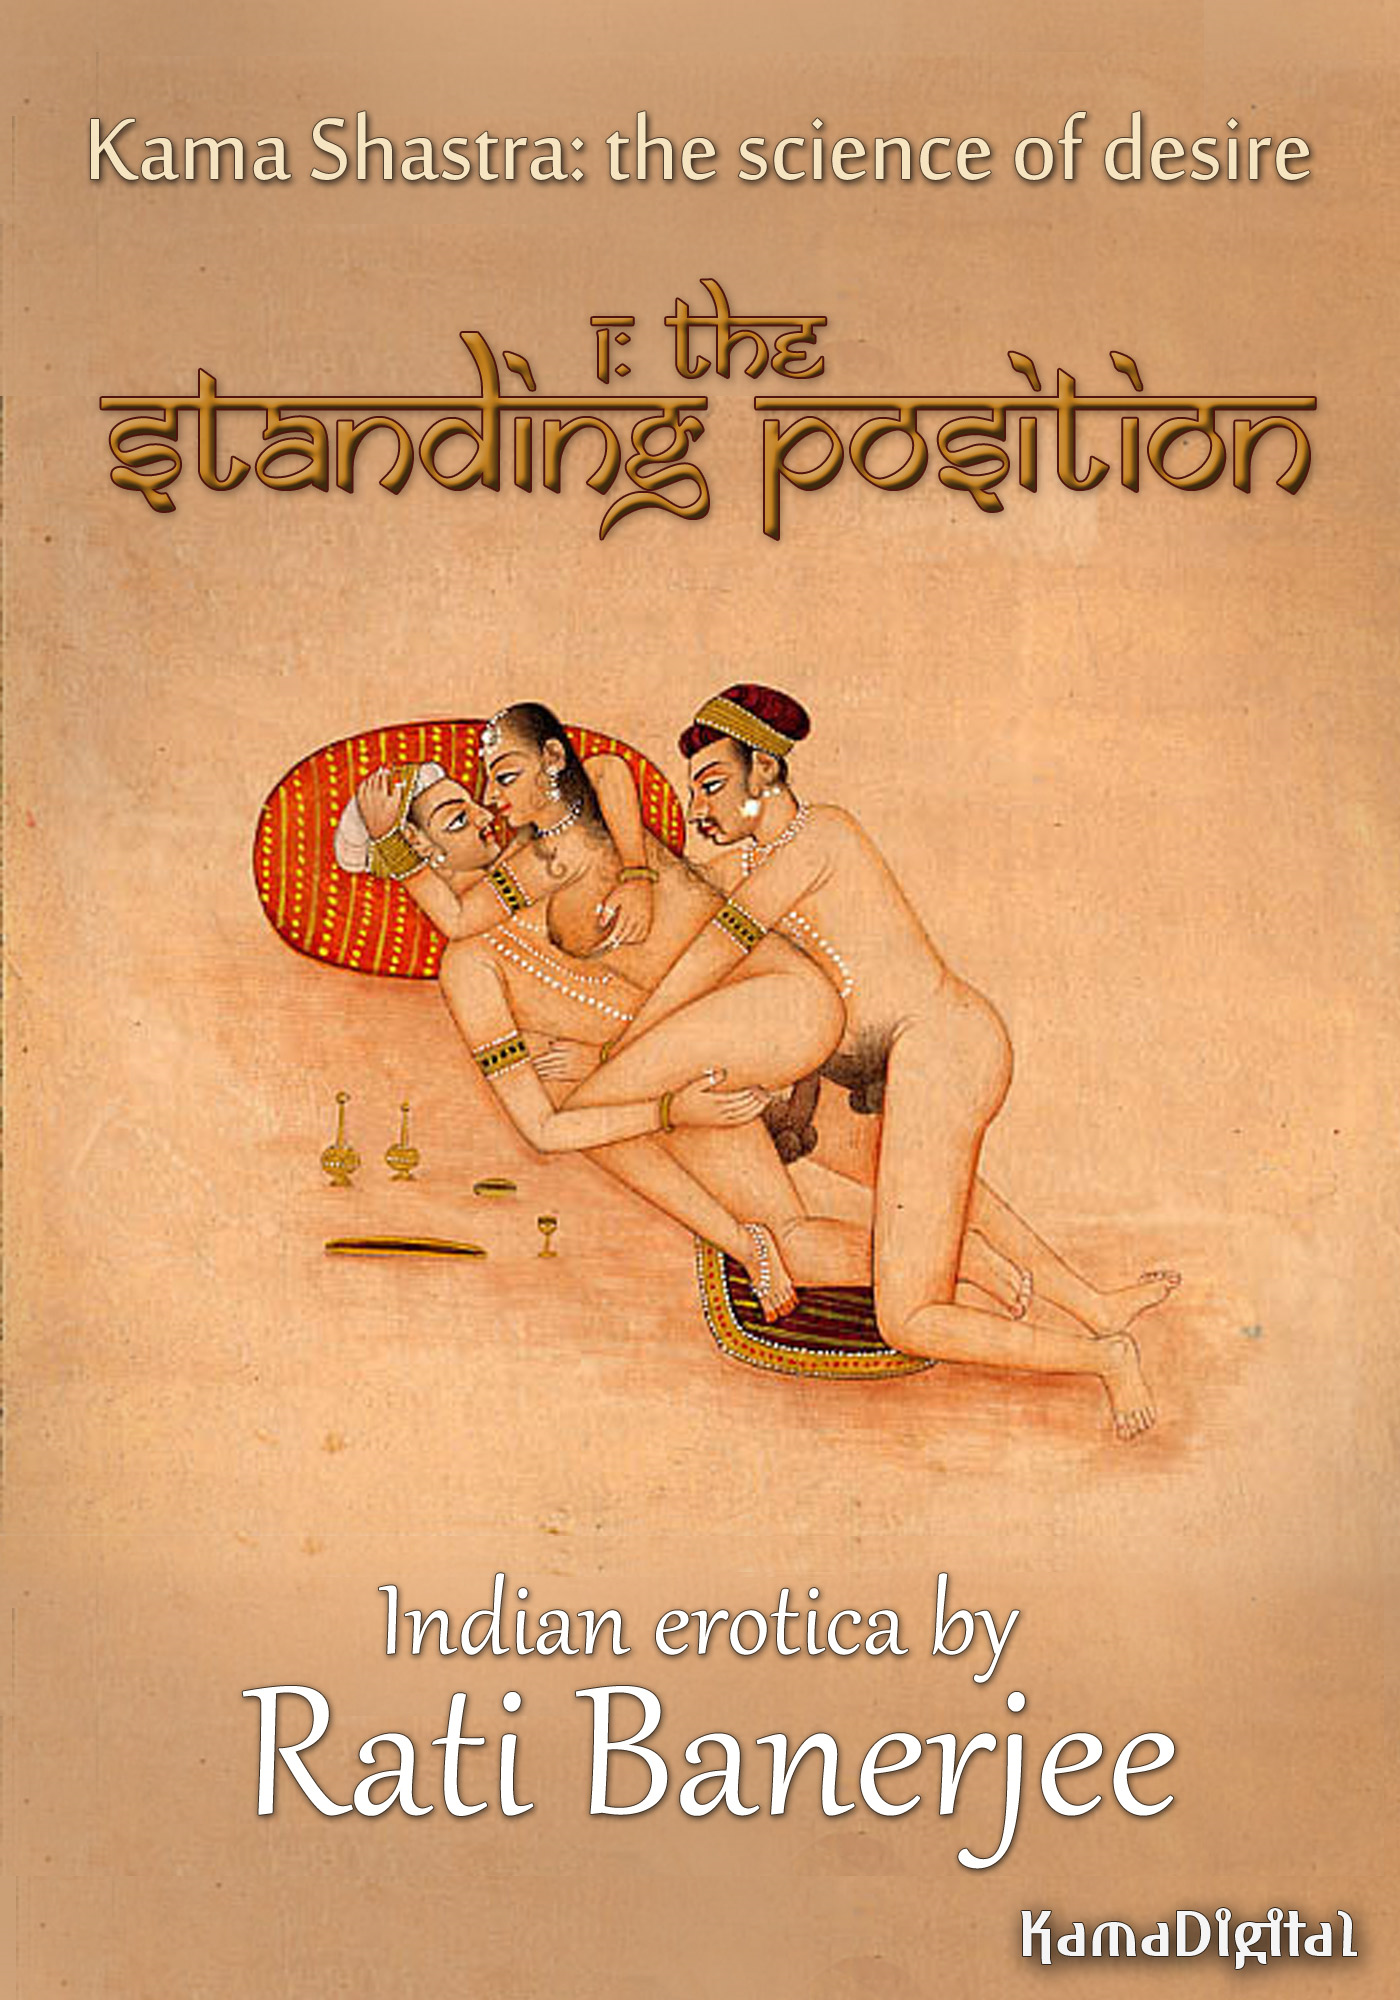 Kama Shastra 1: The Standing Position (Indian erotica, including adultery, open marriage, threesomes and group sex)